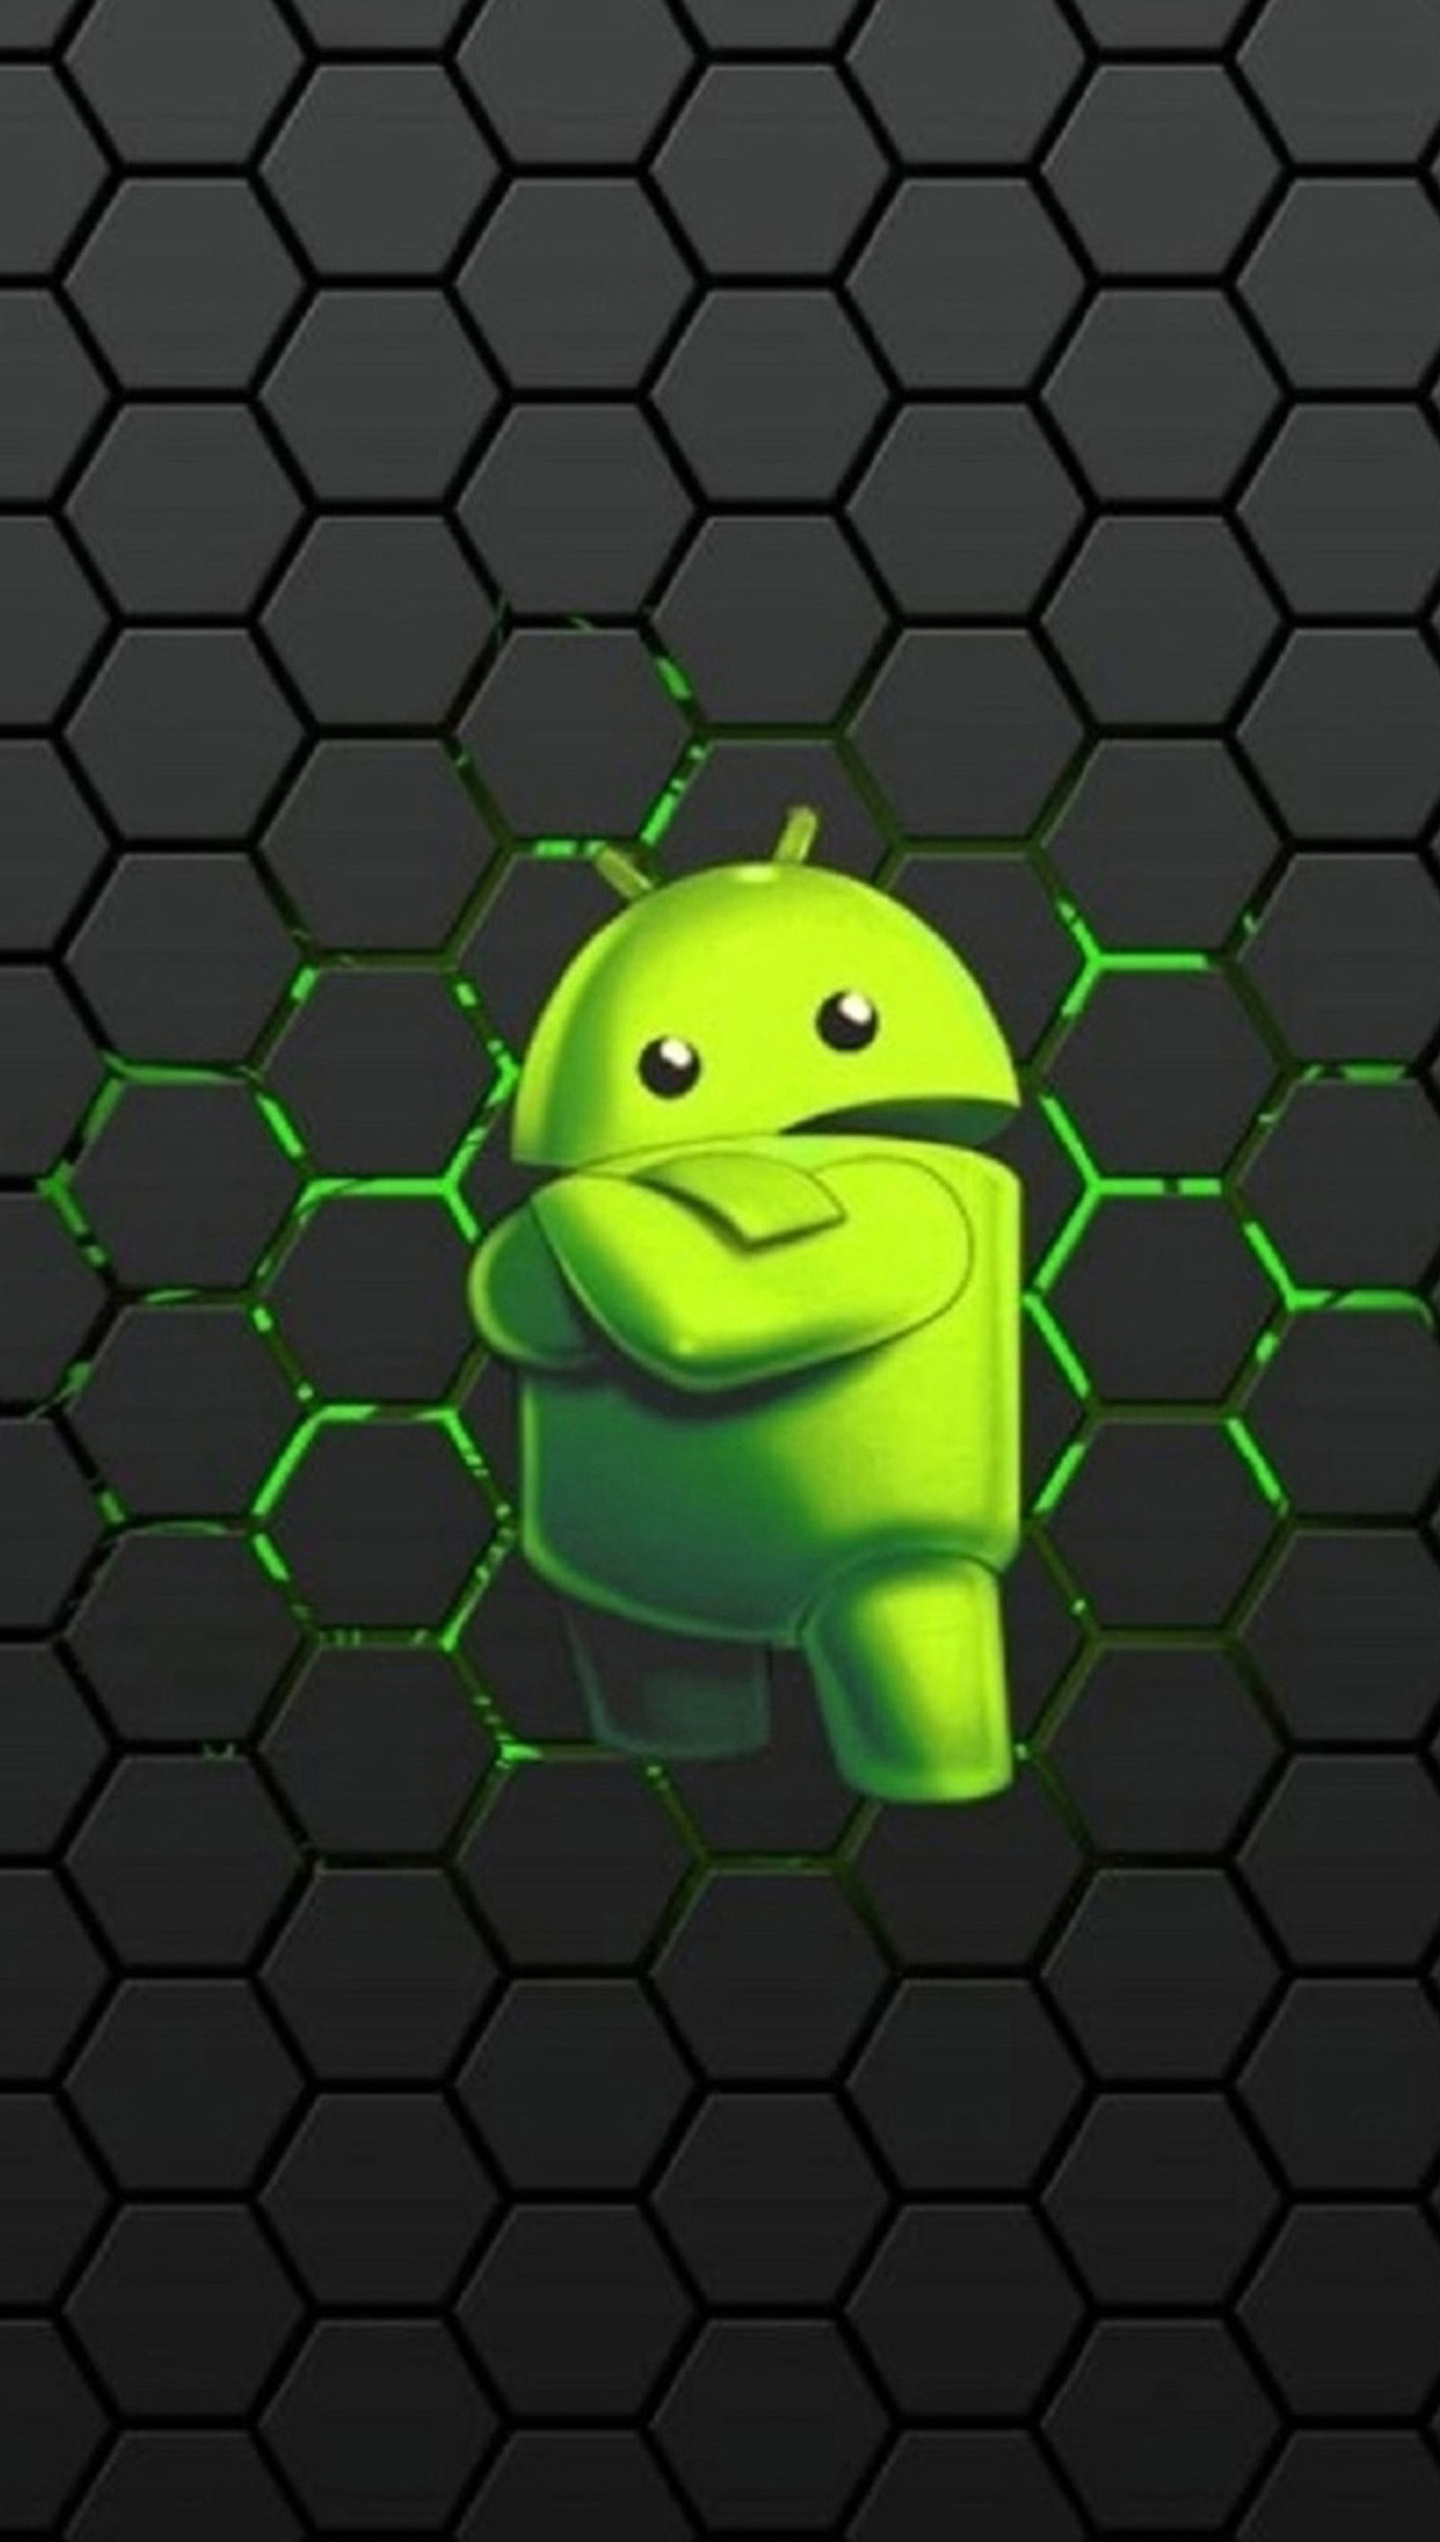 Free Android Robot Wallpaper For Your Phone